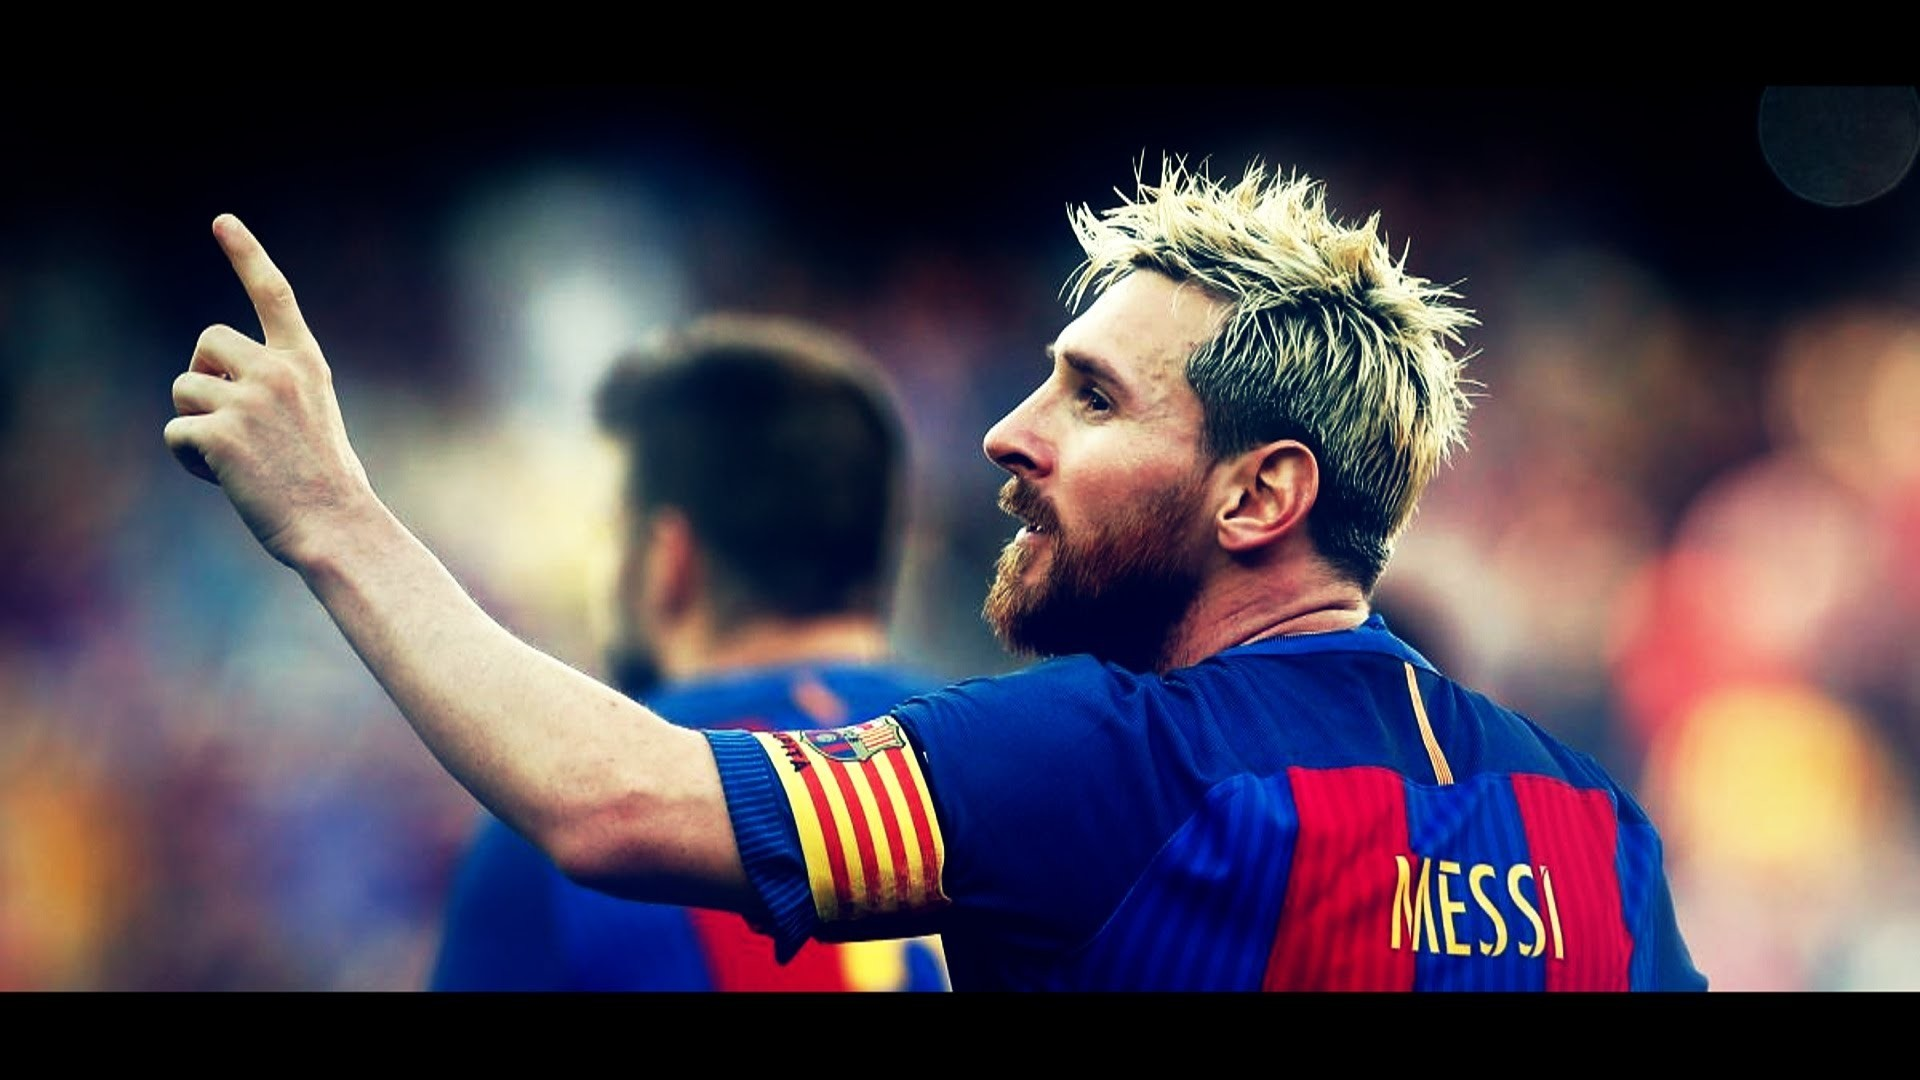 1920x1080 2560x1440 159880890 Lionel Messi Wallpaper | Download for Free